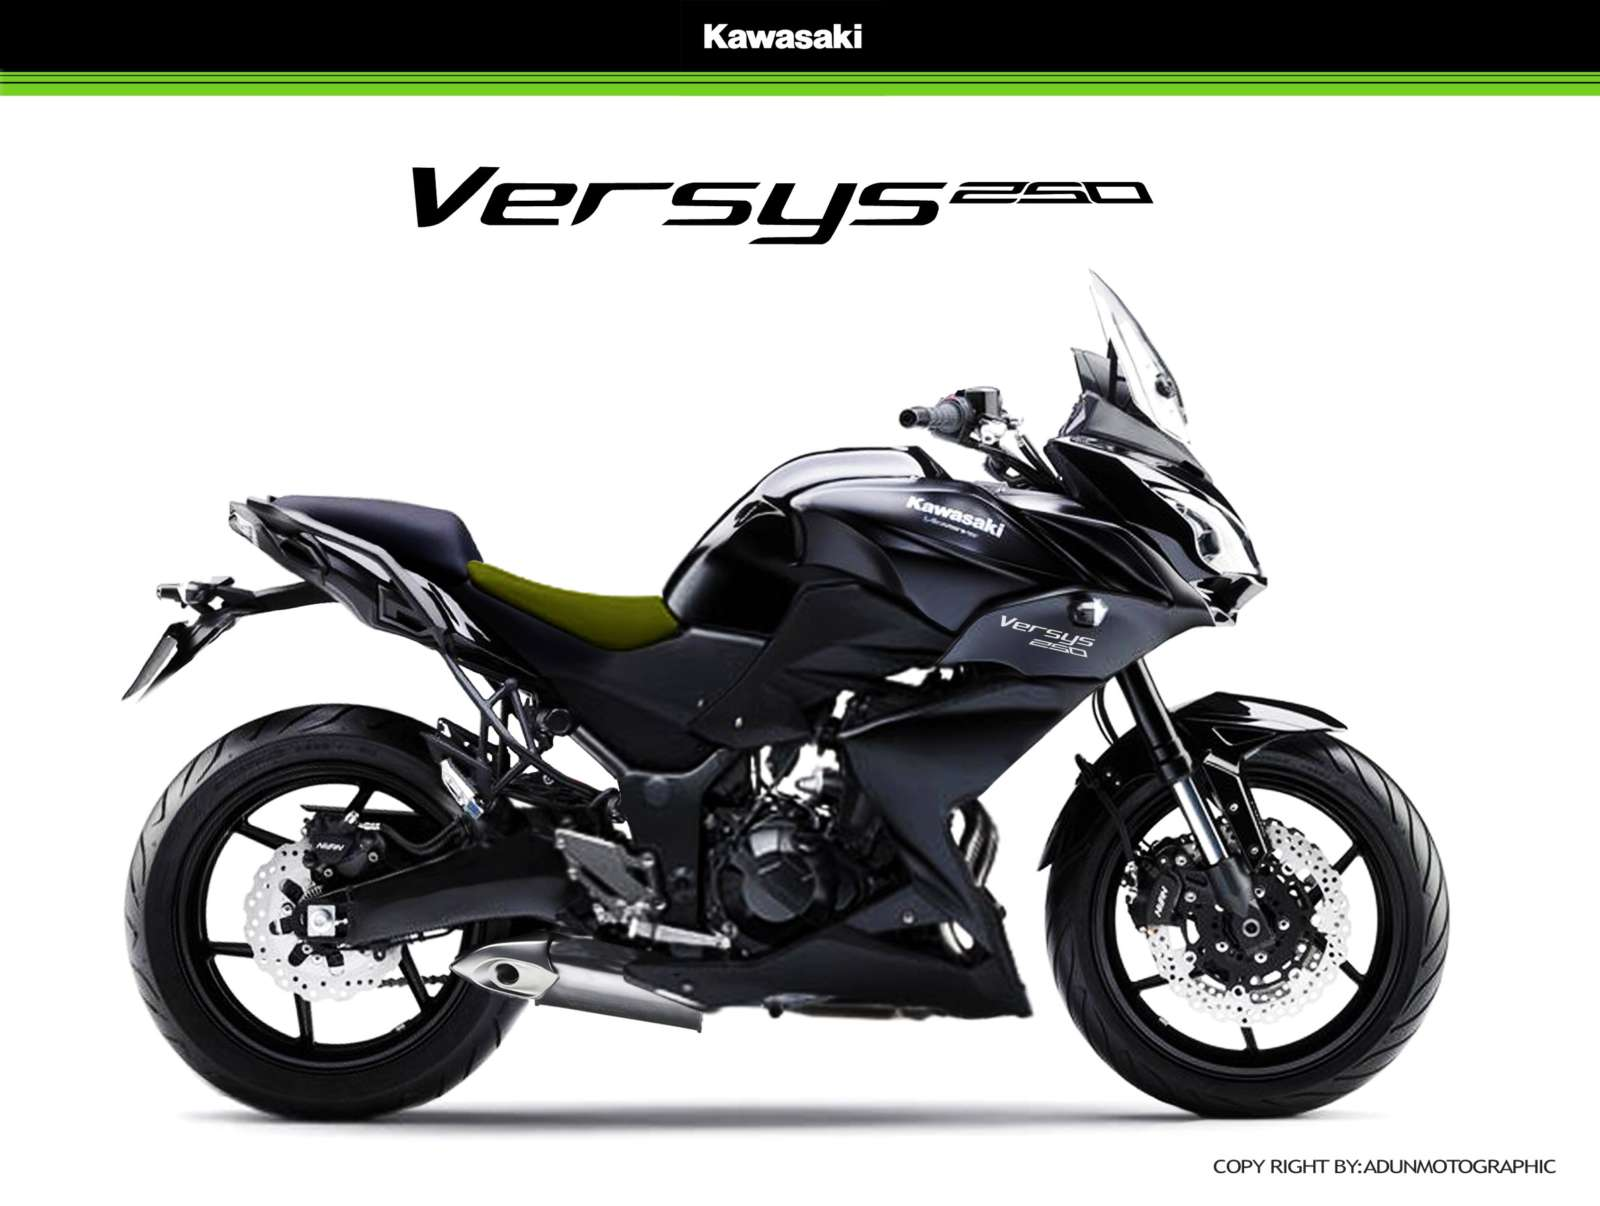 Kawasaki Versys 250 Under Development To Compete With The